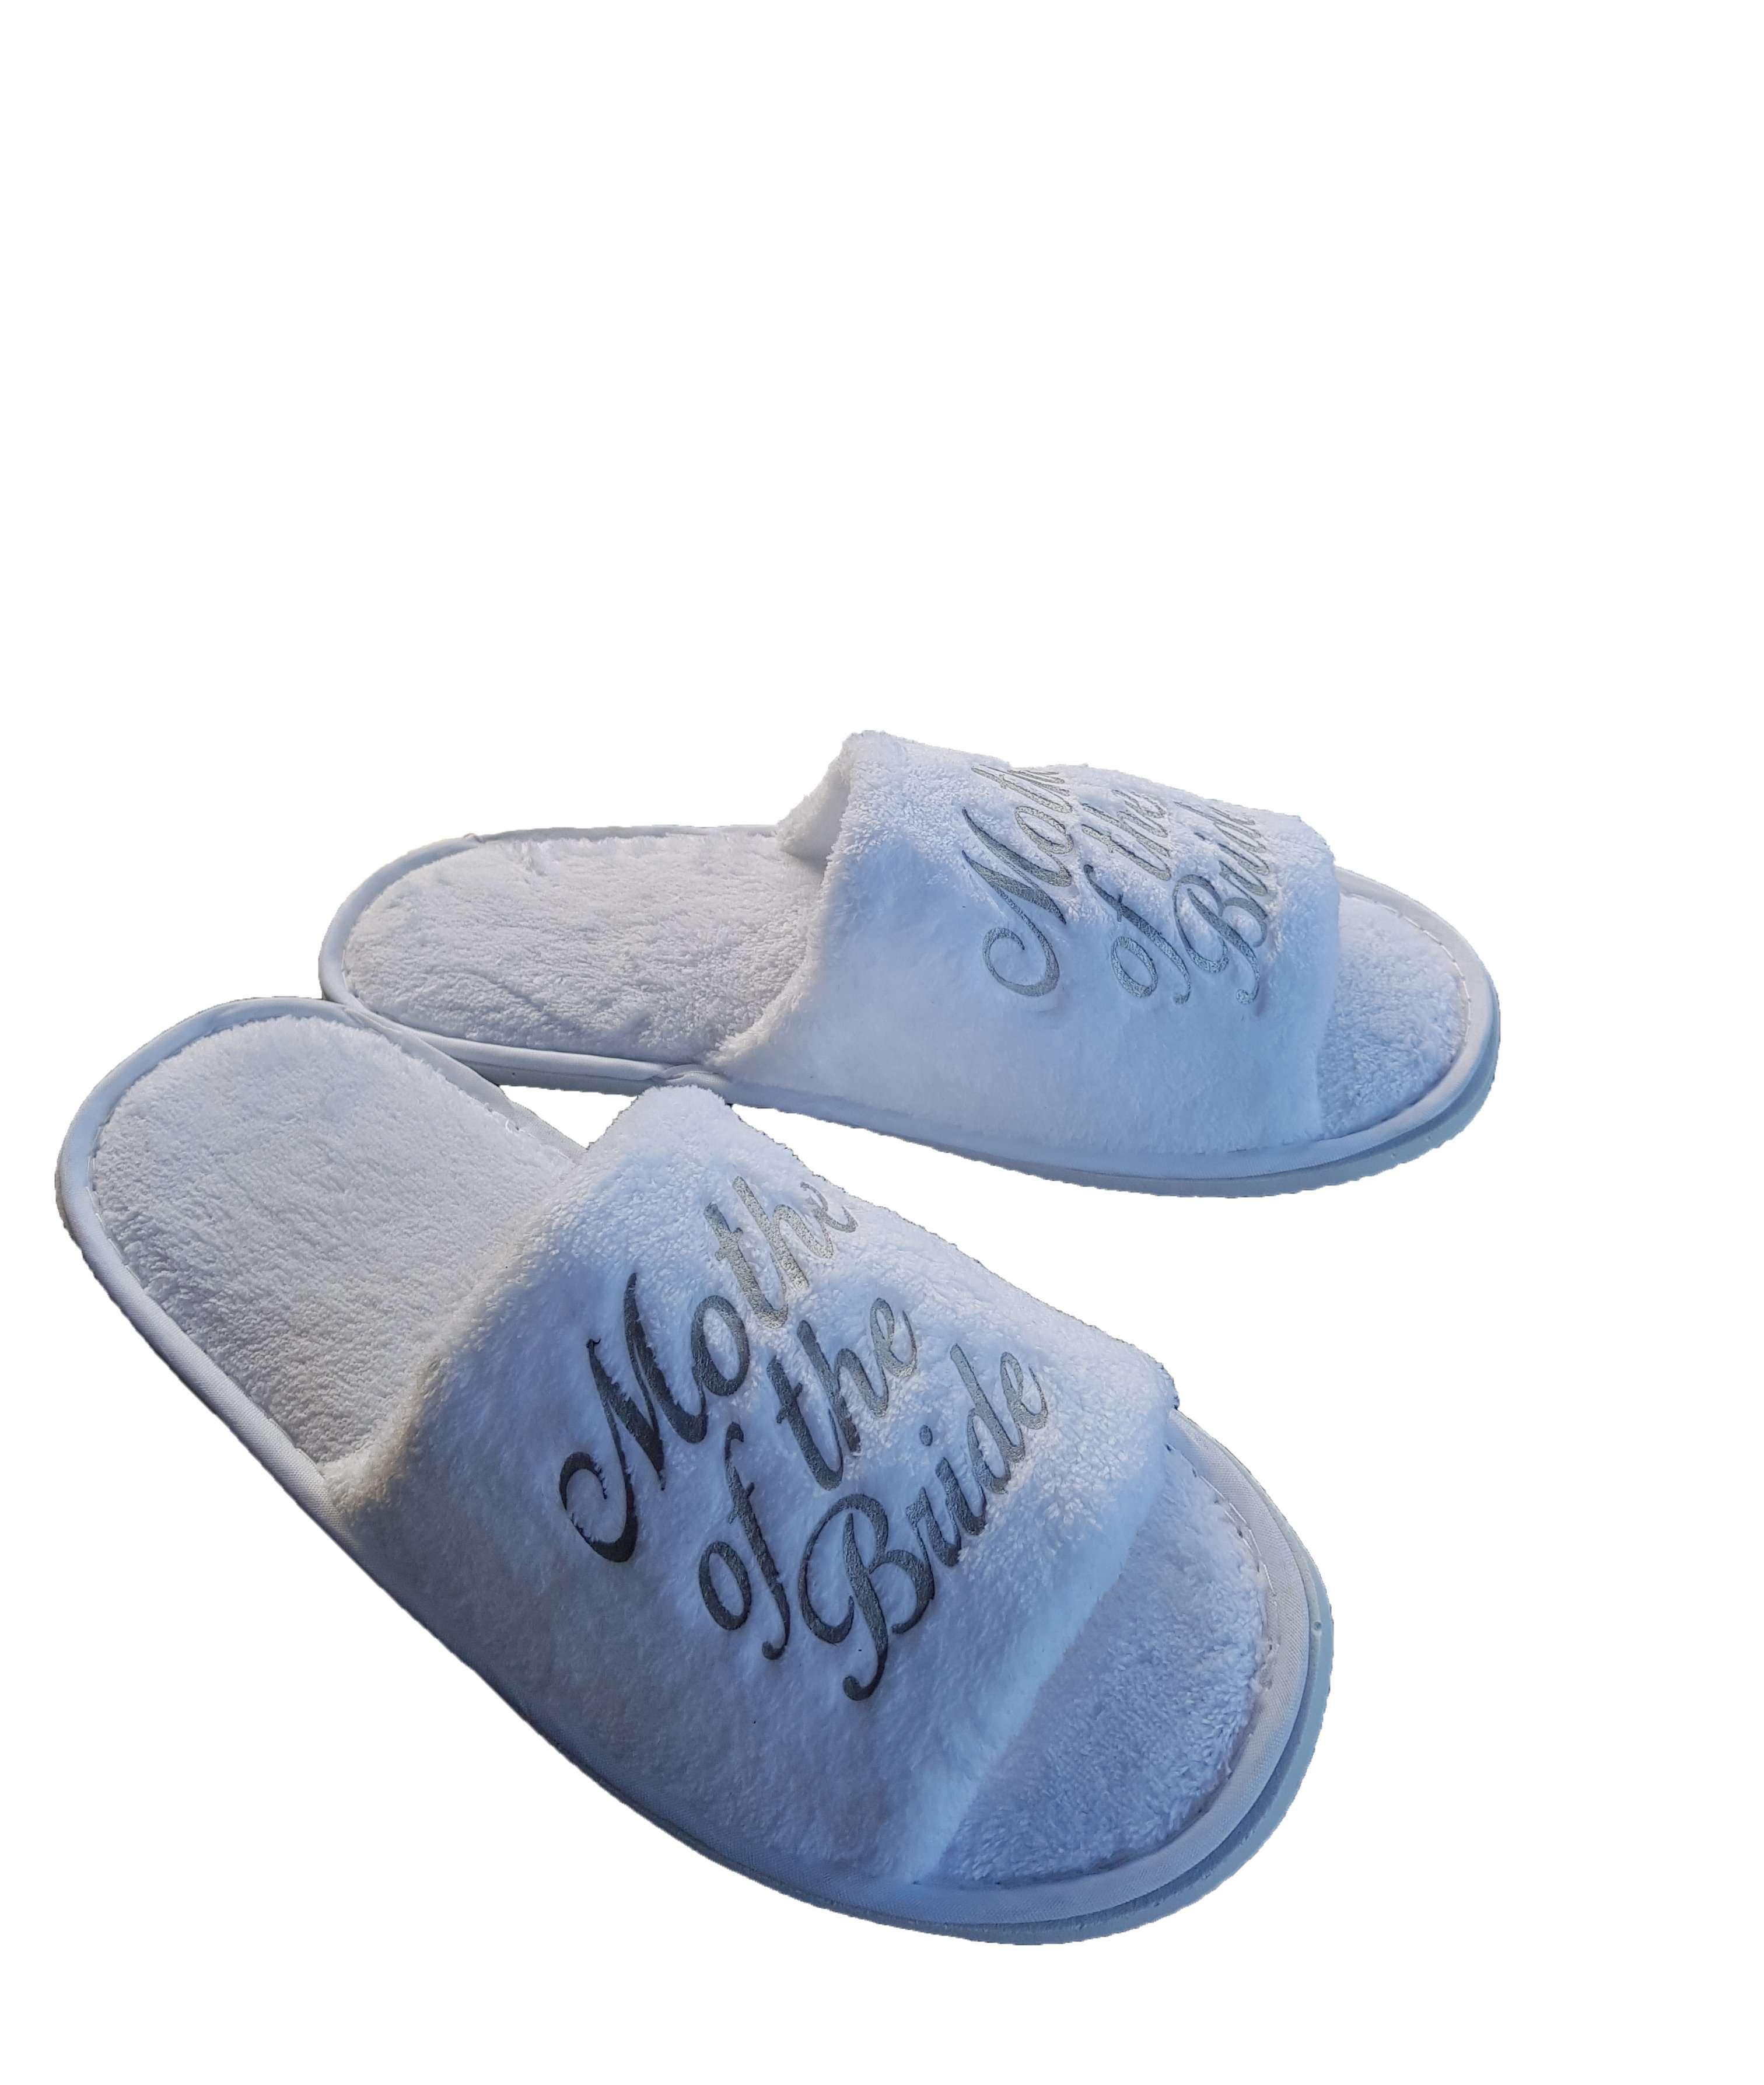 034f5e5e5 At Get Spliced we provide high quality robes and slippers for bride